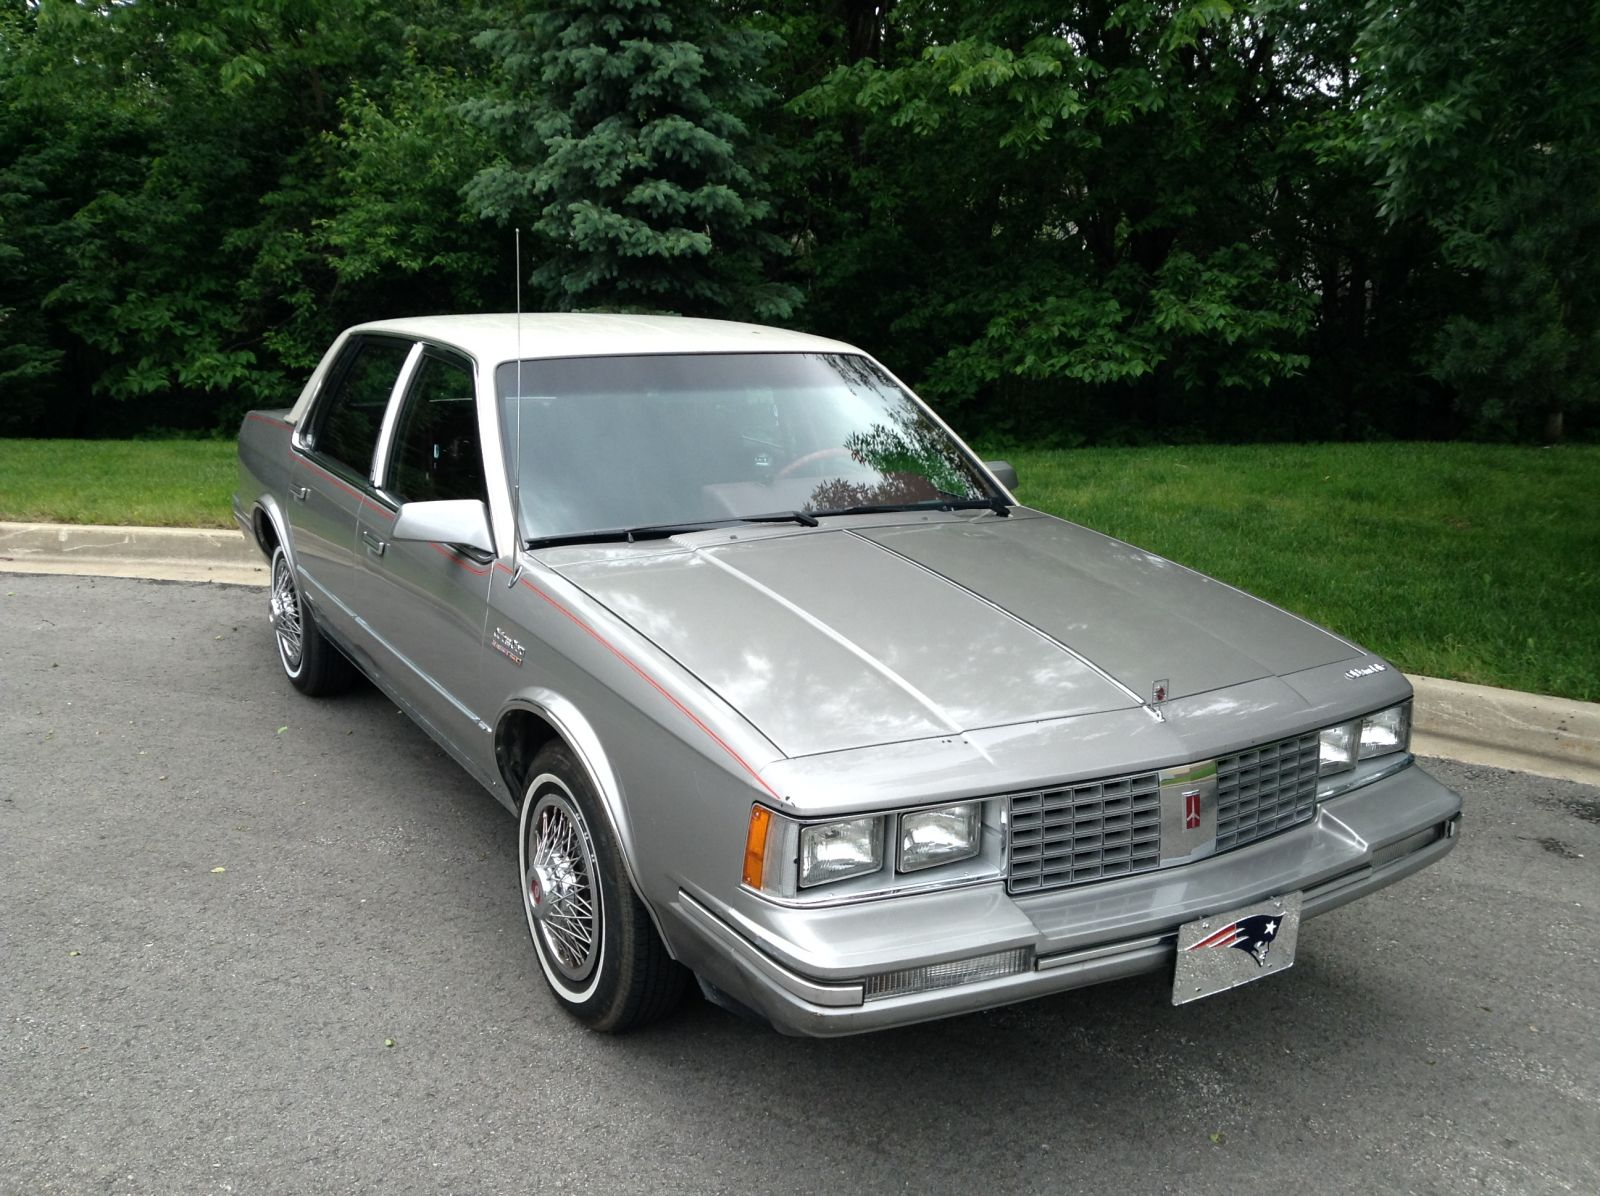 1983 Oldsmobile Cutlass Ciera Brougham Cream Puff